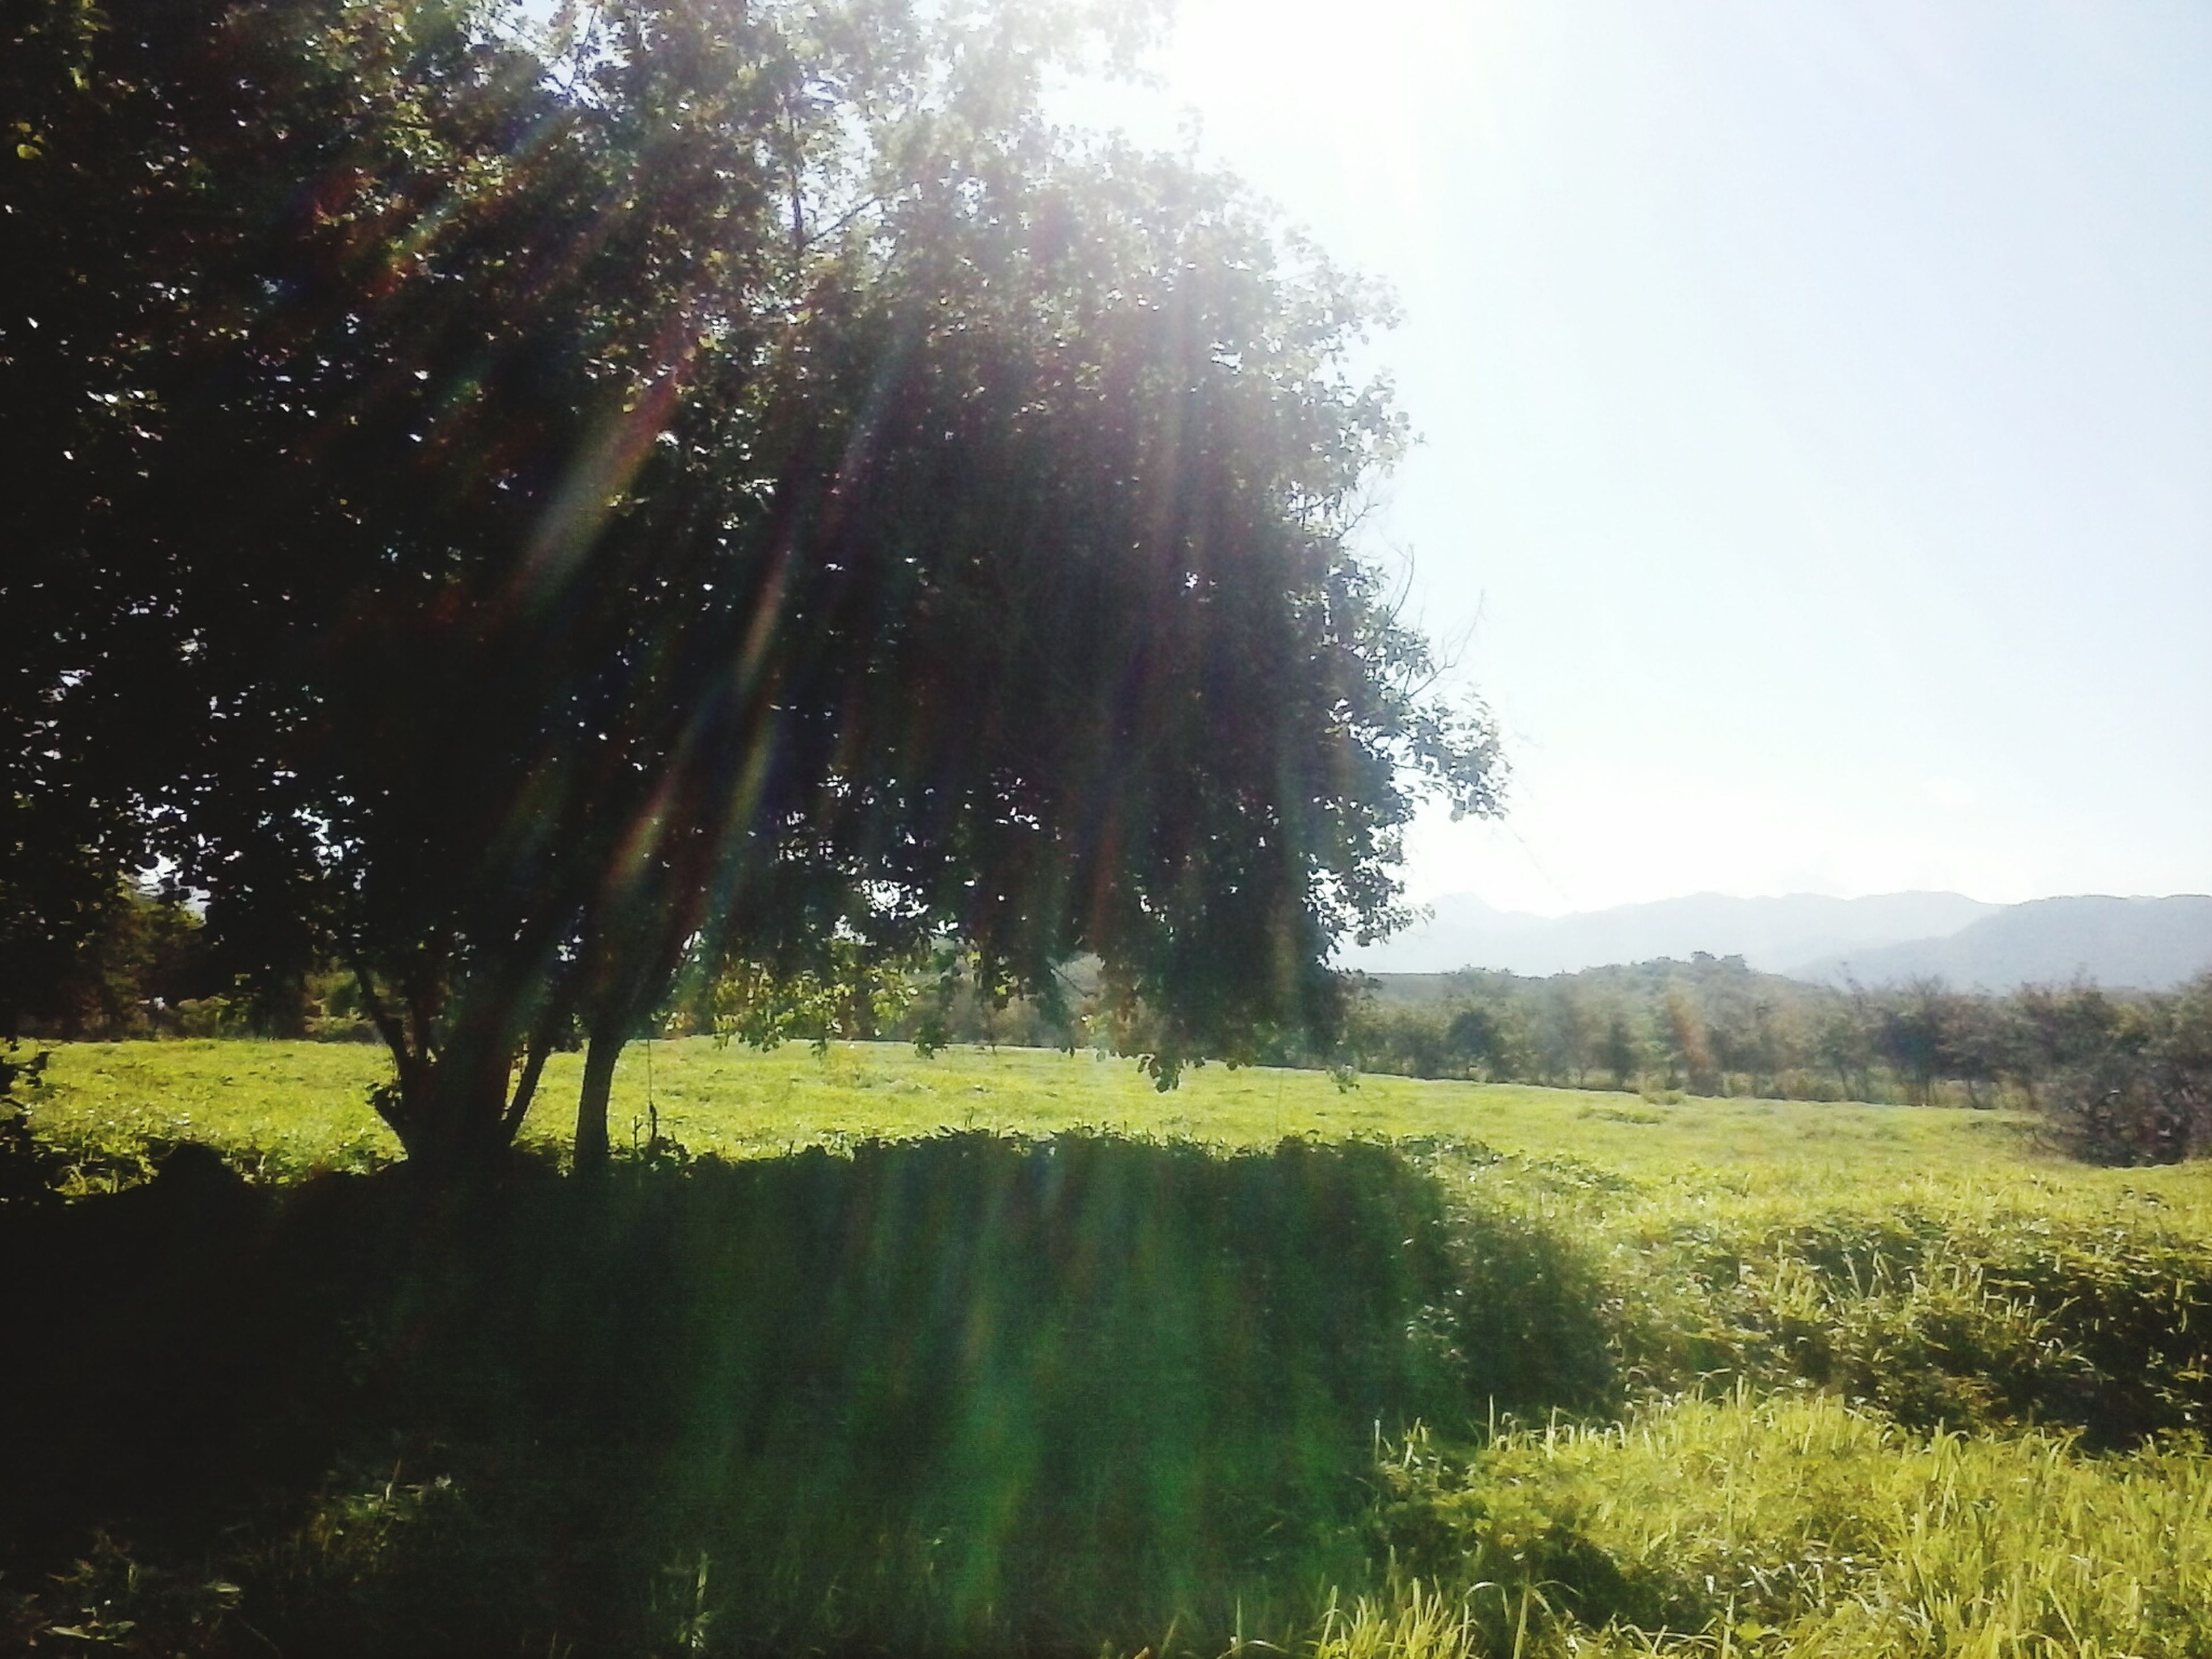 tree, nature, tranquility, tranquil scene, beauty in nature, sunbeam, sunlight, landscape, grass, scenics, no people, field, growth, outdoors, day, forest, clear sky, sky